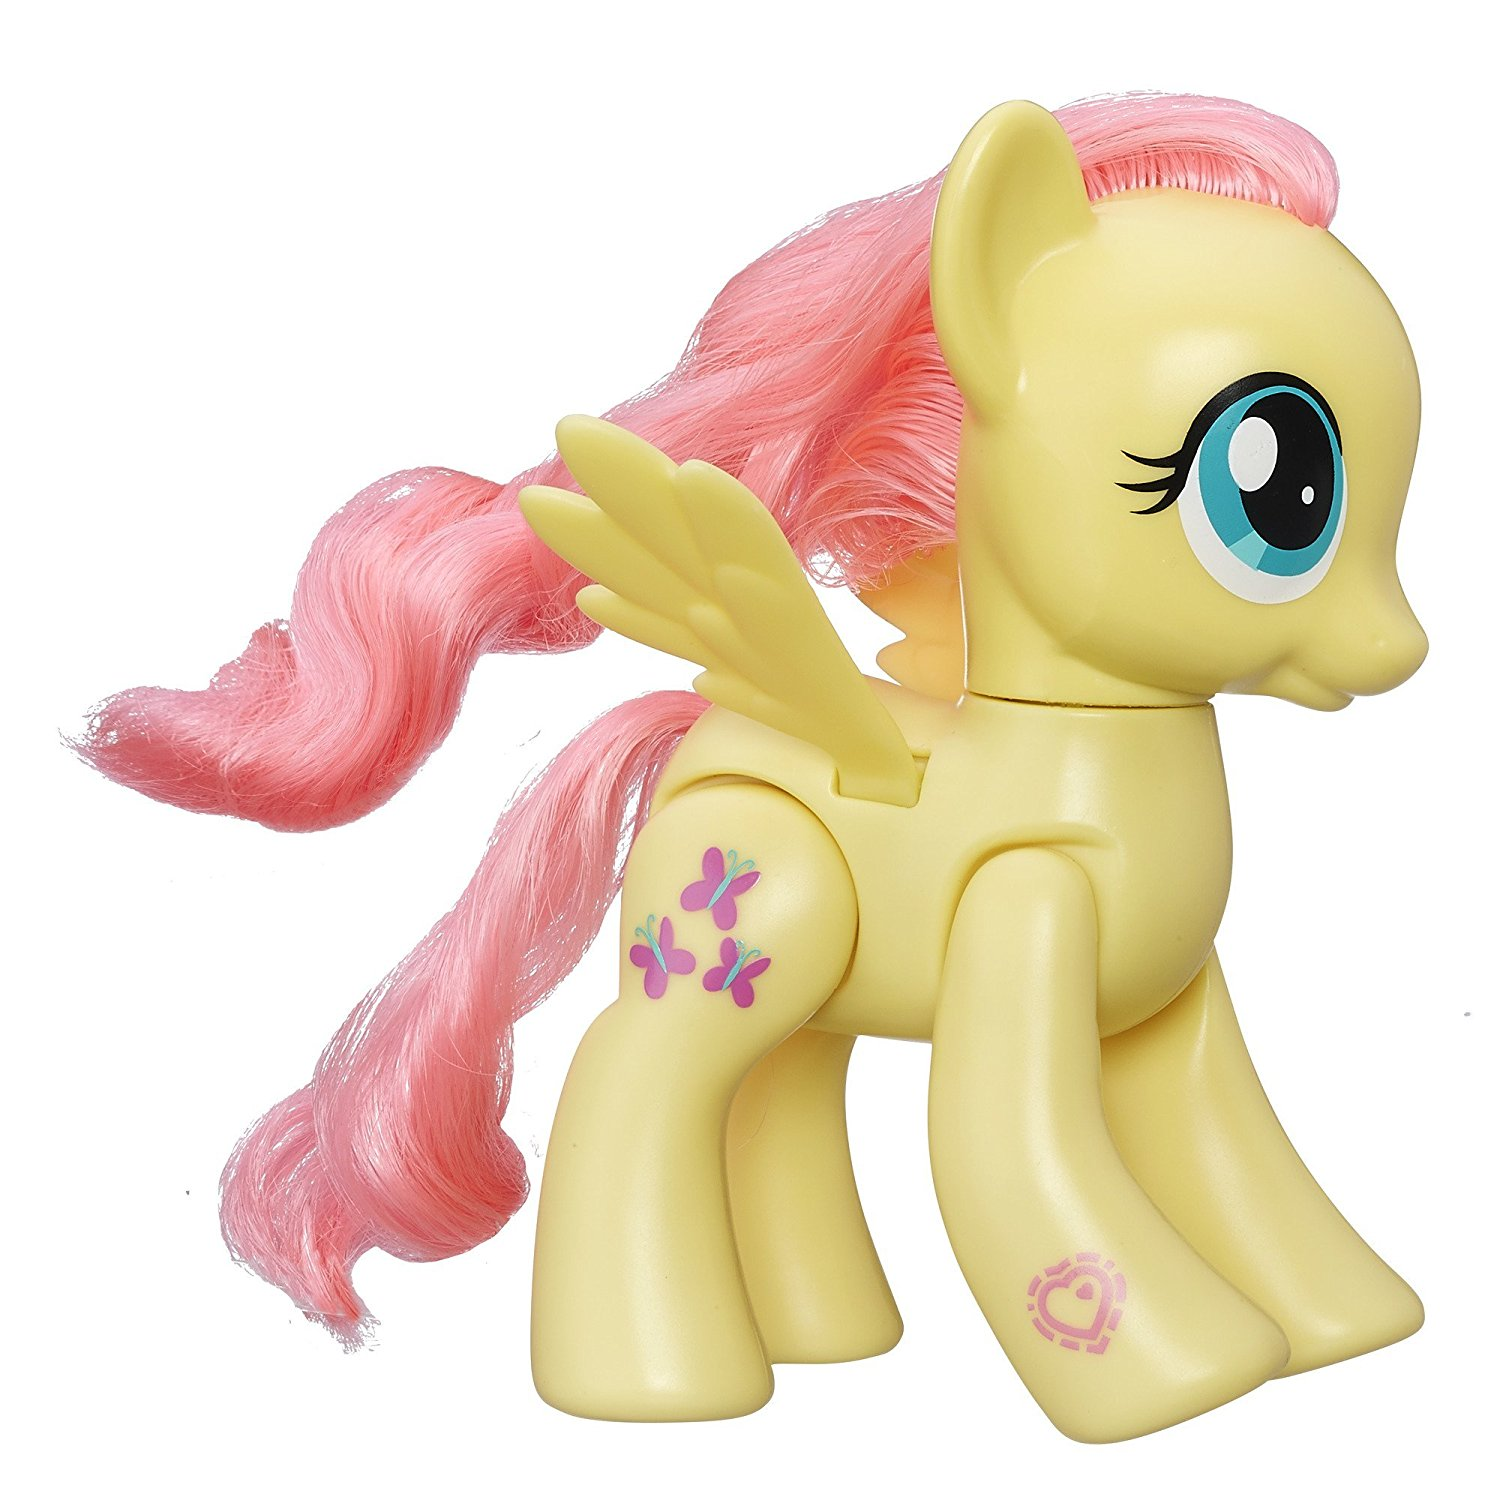 My Little Pony Toys : Big amazon sale on latest mlp toys merch